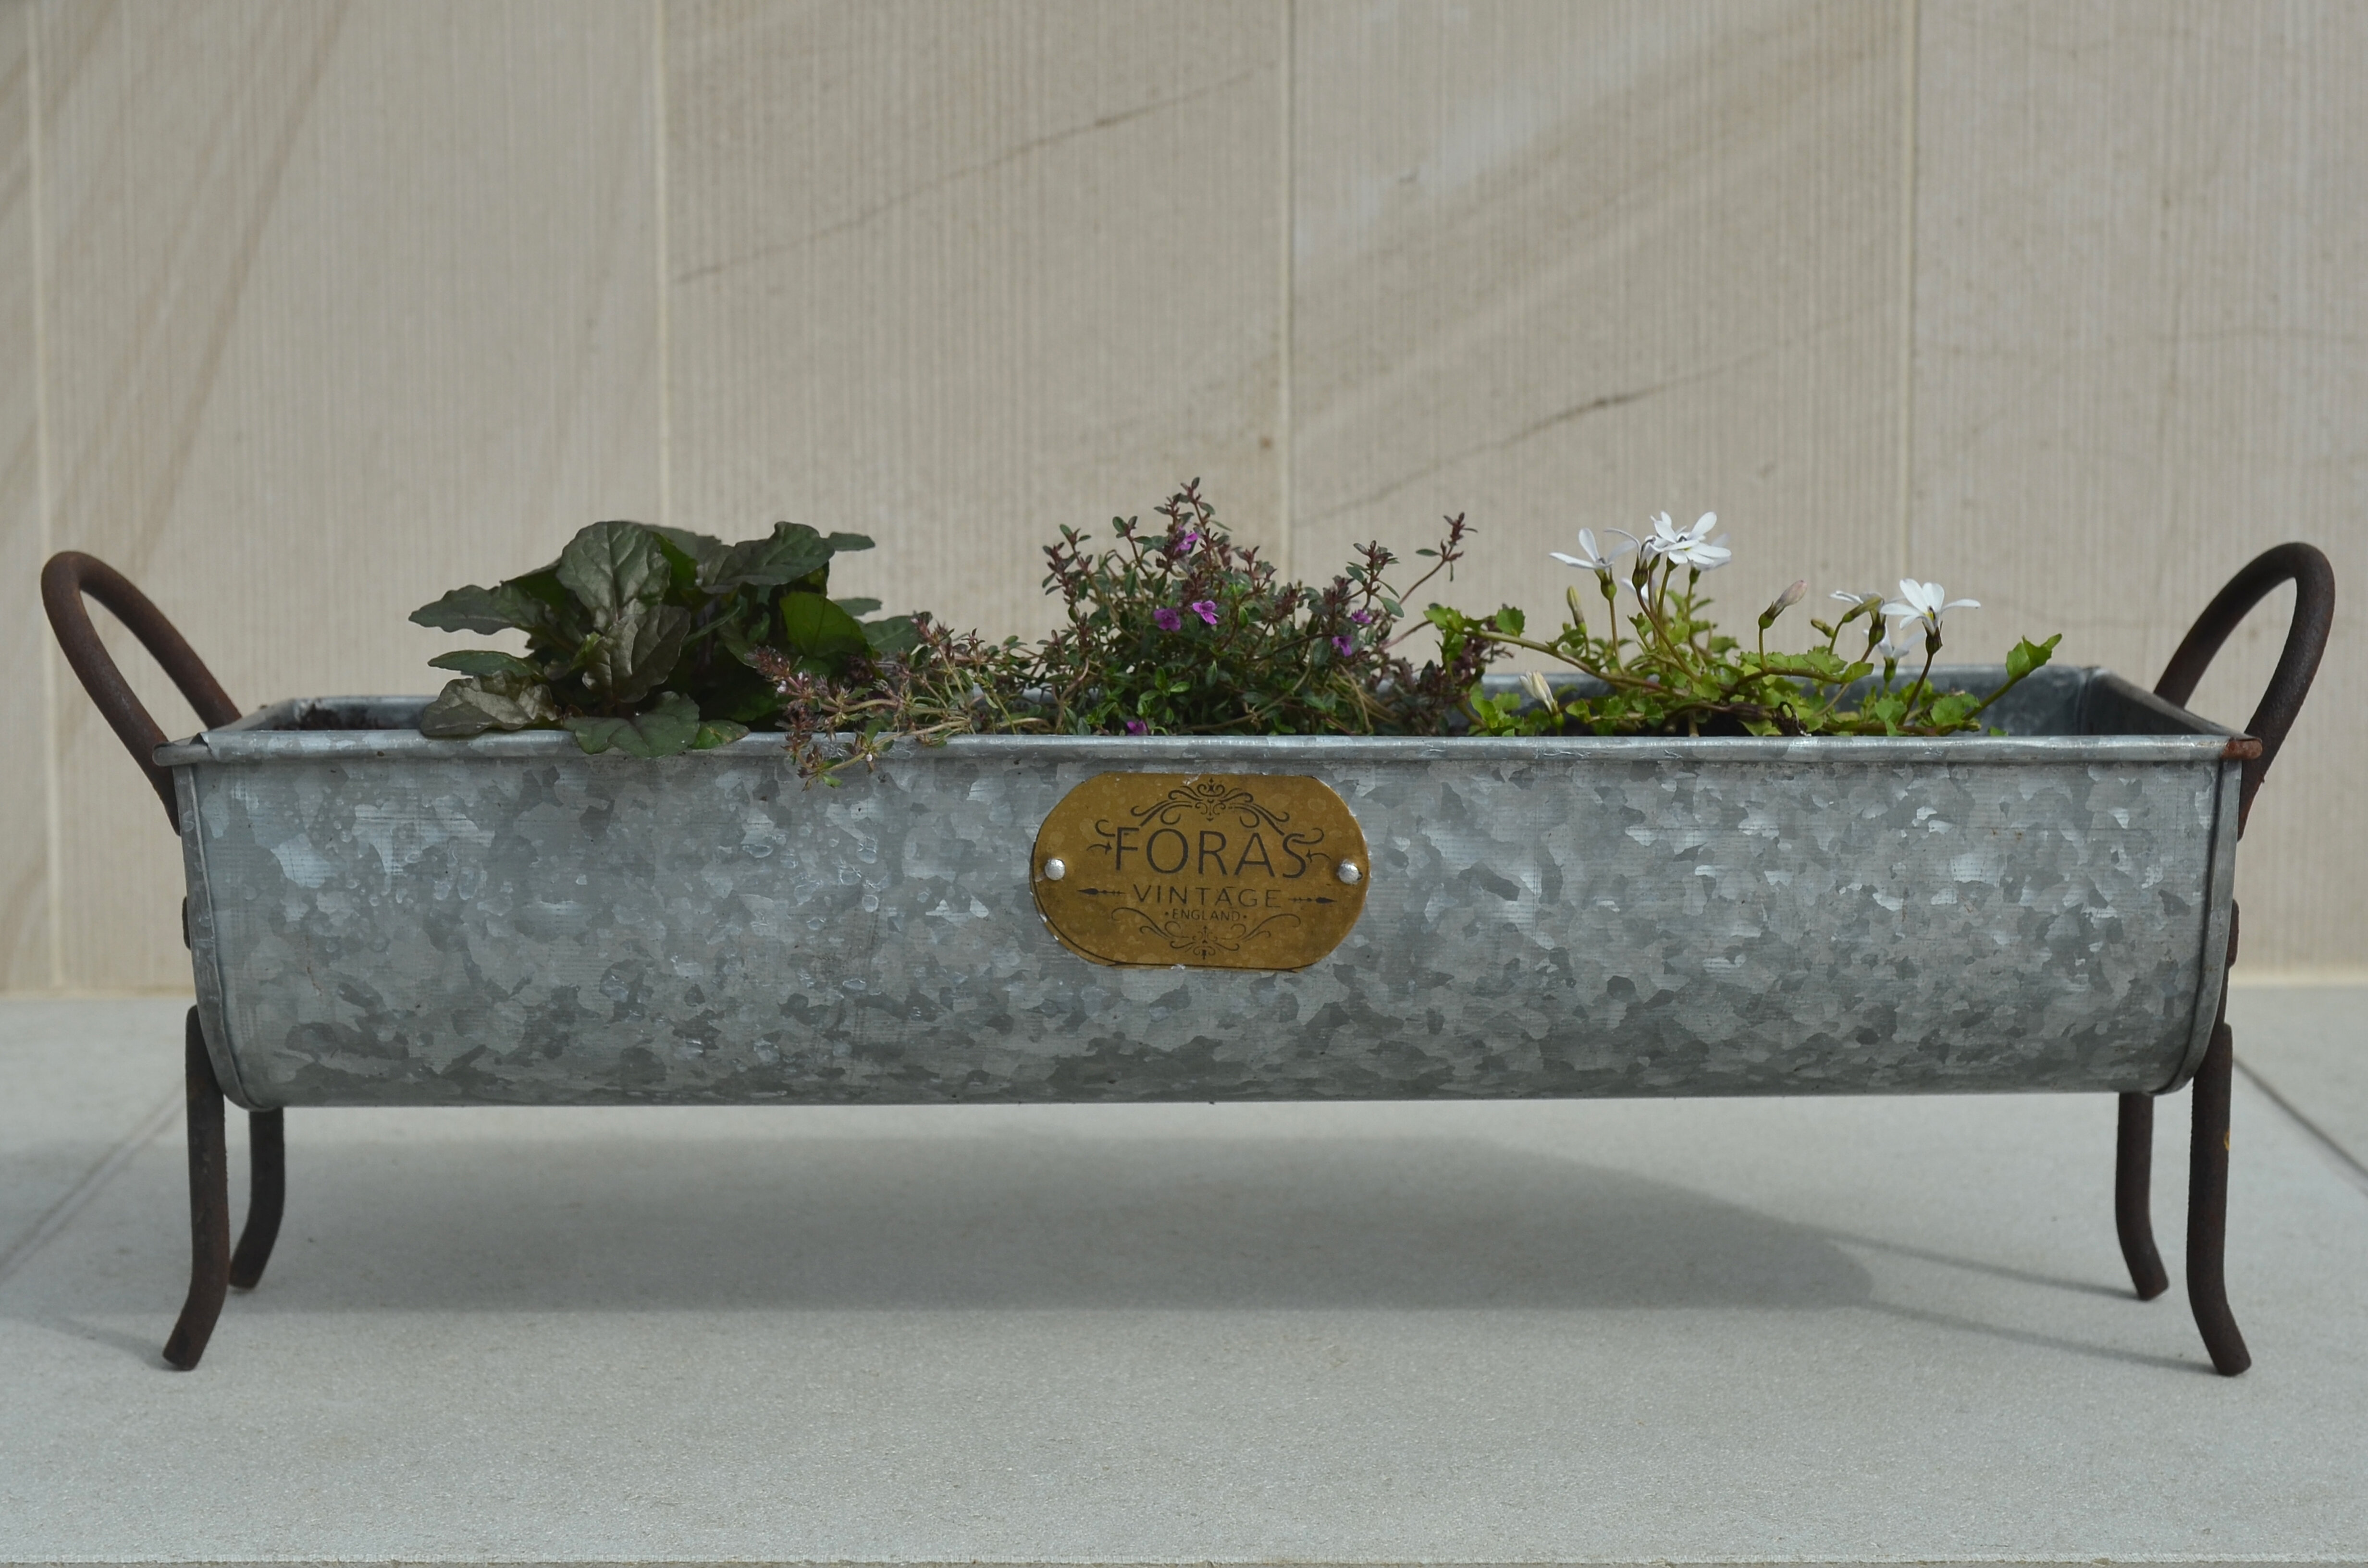 Foras Snuffle Vintage Planter Box & Reviews   Wayfair.co.uk on round corrugated planters, wall mounted planters, aluminum planters, iron planters, plastic planters, corrugated raised planters, window boxes planters, urn planters, chrome planters, large planters, lead planters, copper finish planters, old planters, resin planters, bucket planters, pewter planters, stainless steel planters, stone planters, long rectangular planters, tall planters,